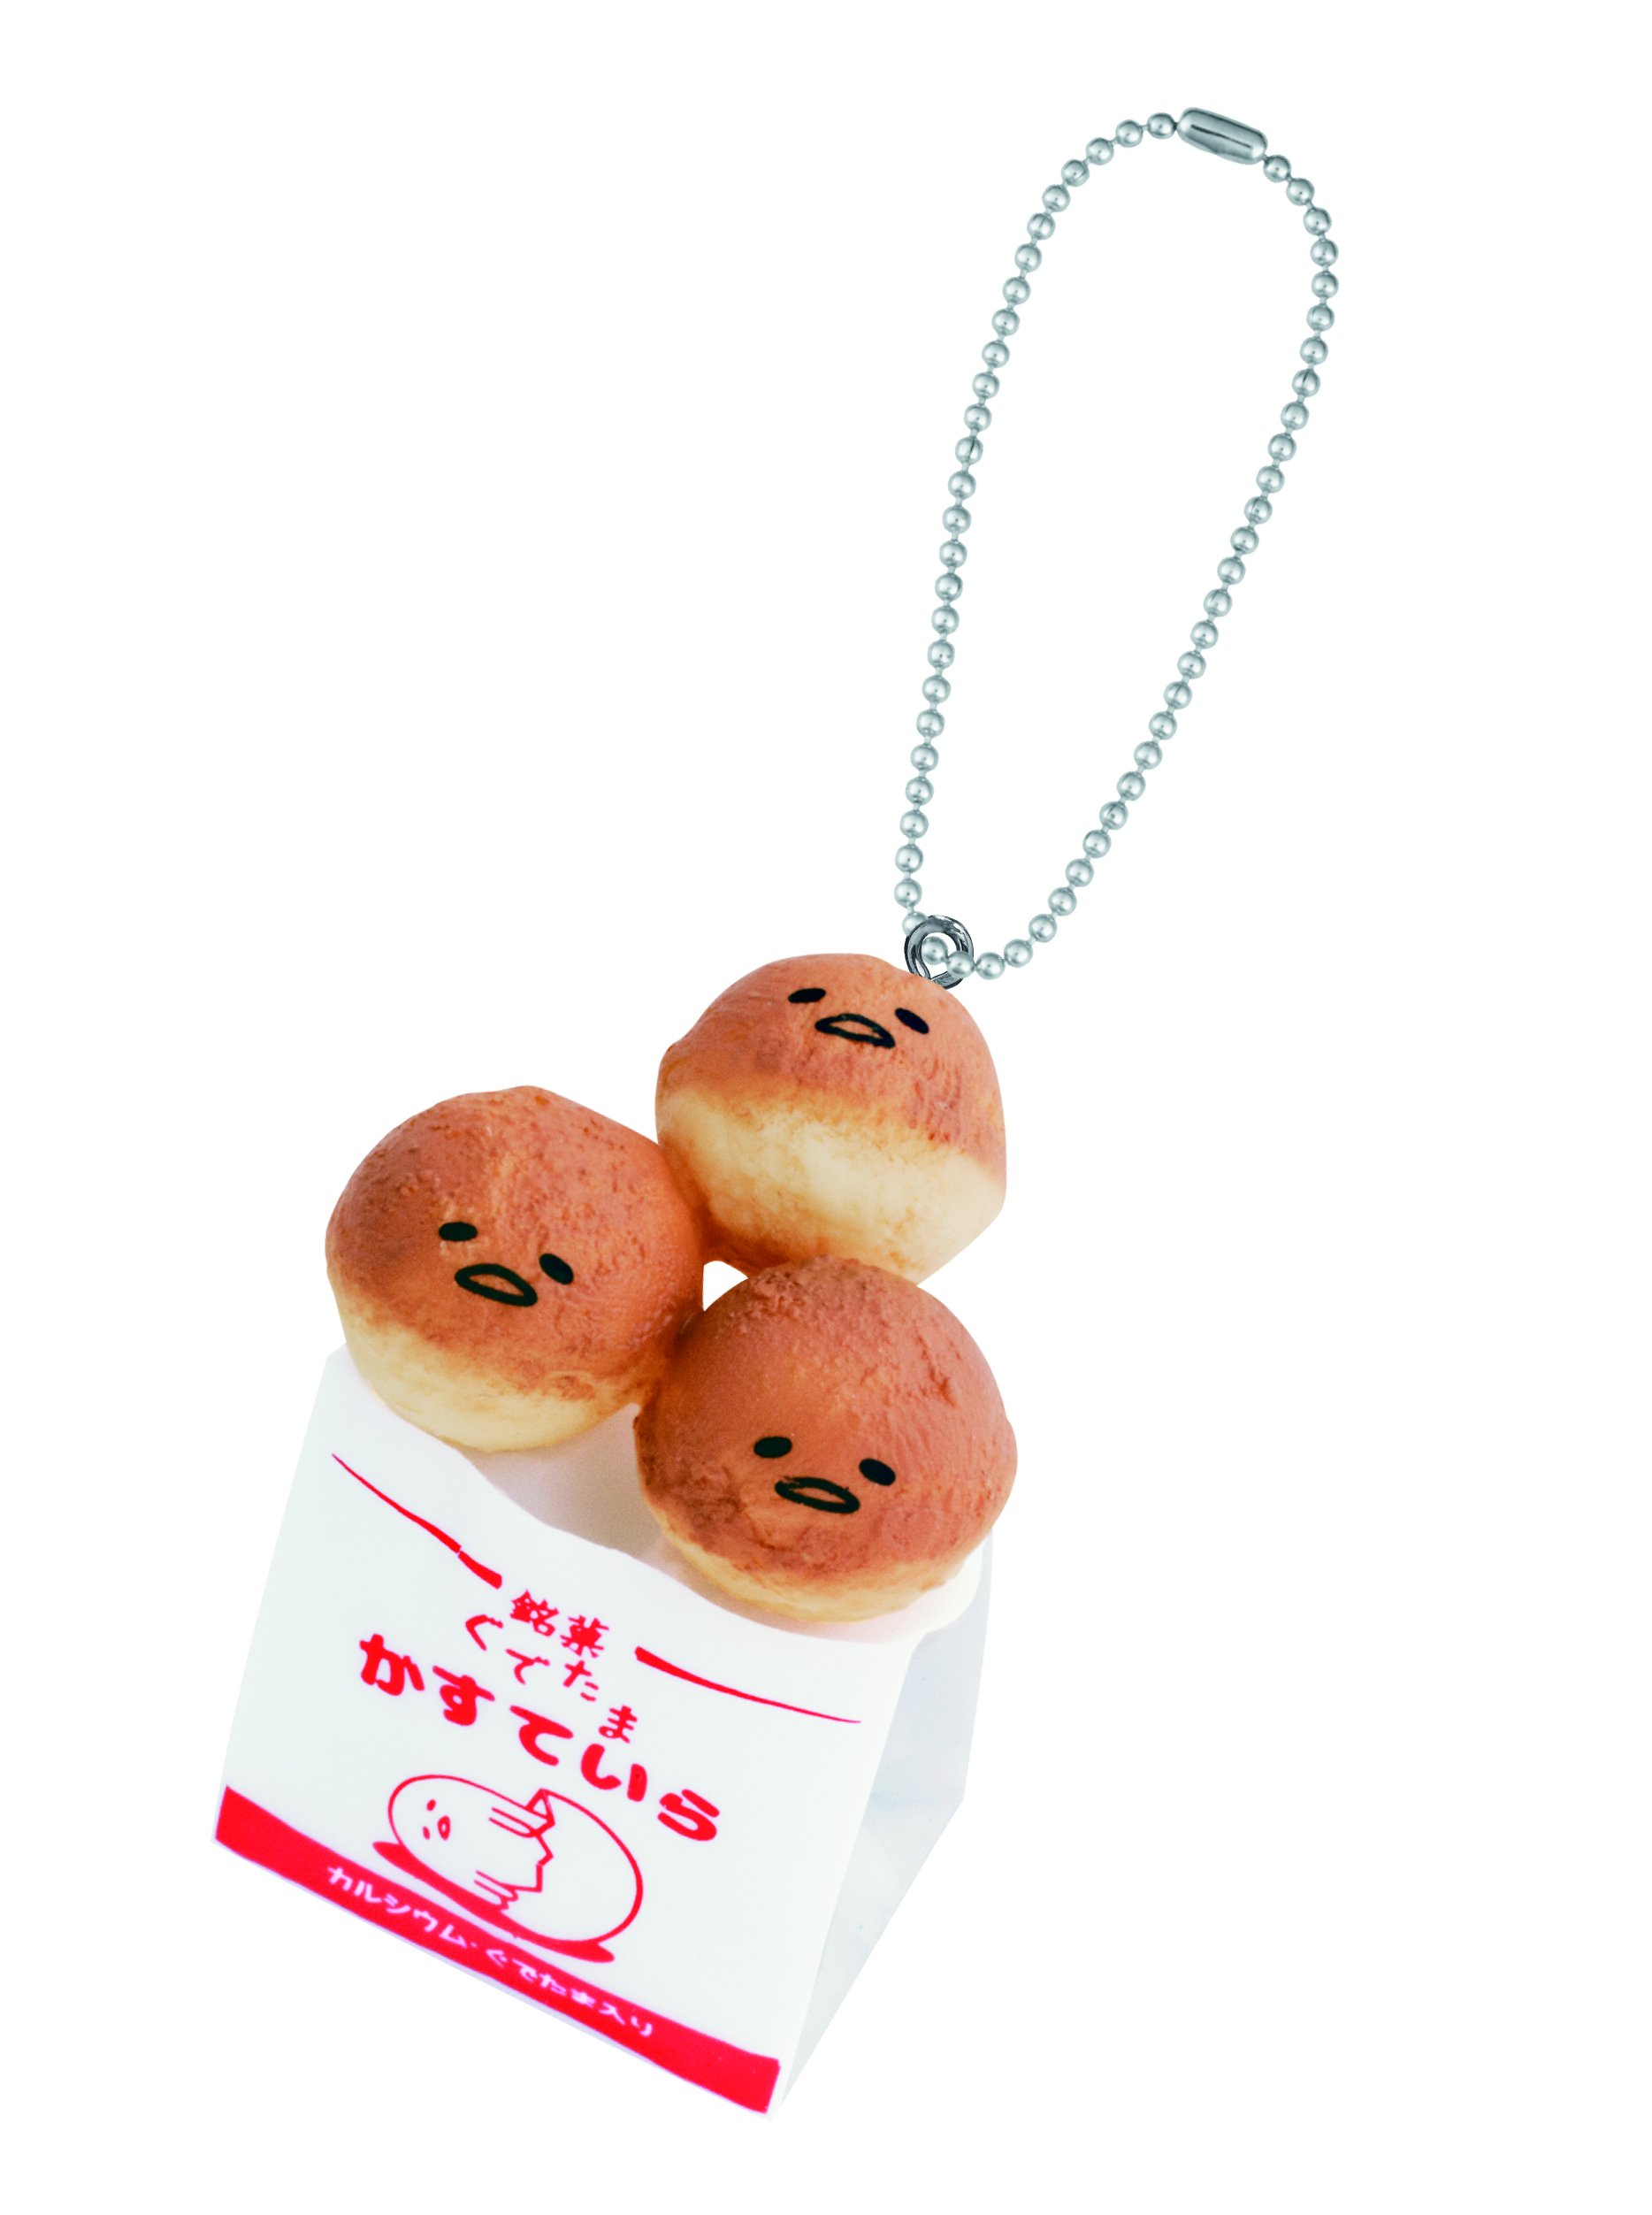 Full set Box 8 packages miniature figure Gudetama Japanese Festival Mascot by Re-Ment from Japan by Re-Ment (Image #4)